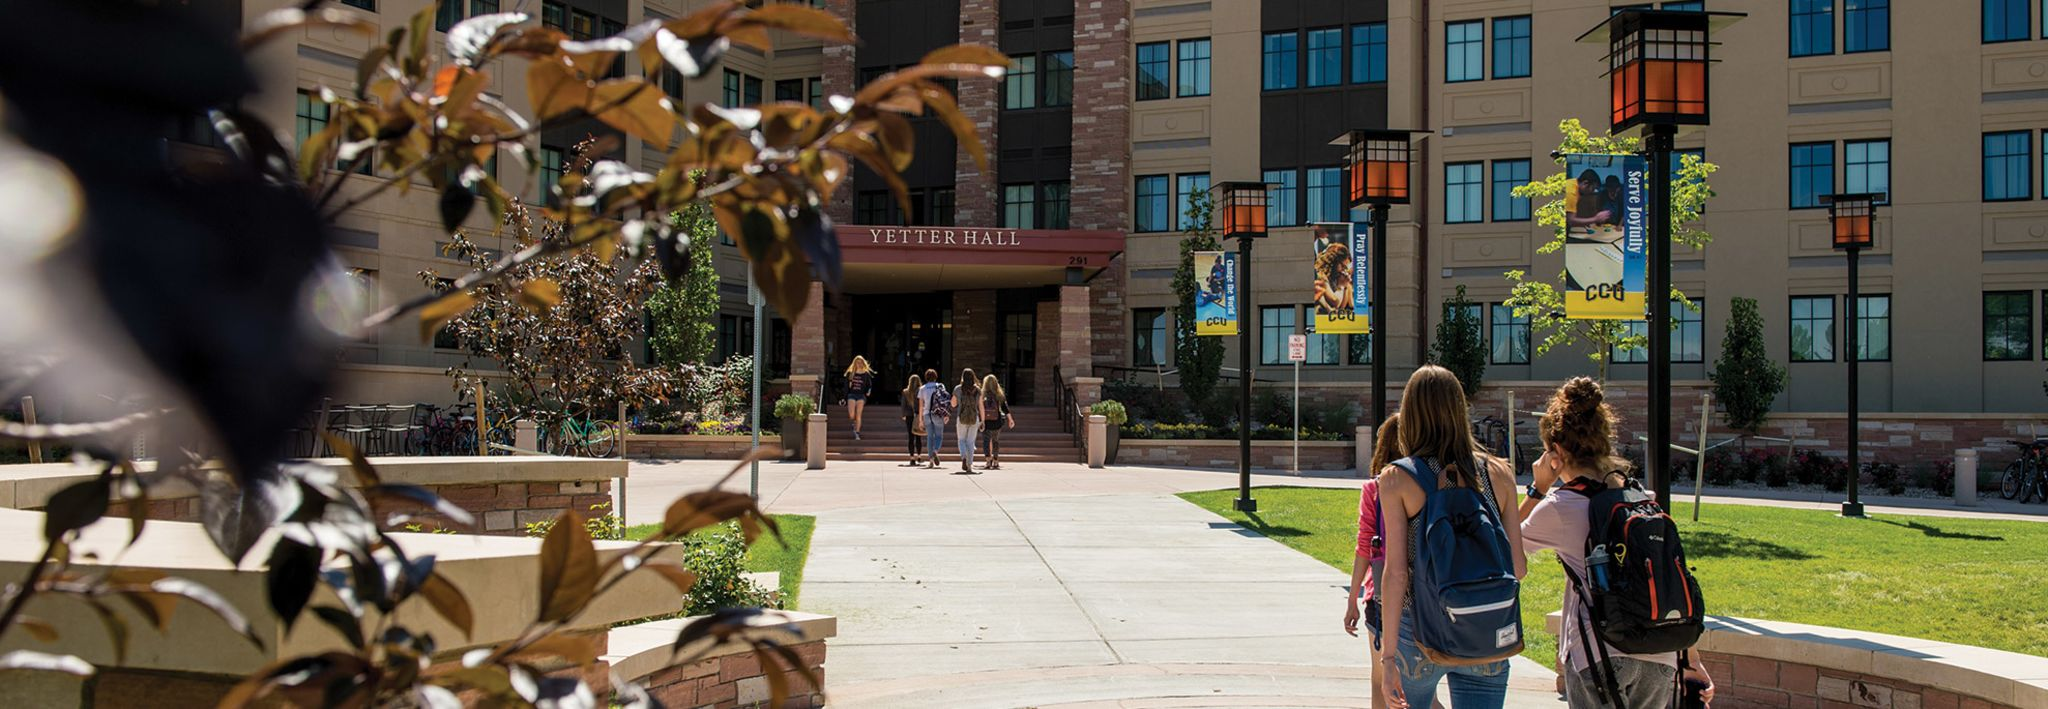 Students on walkway leading up to the entrance of Yetter Hall.